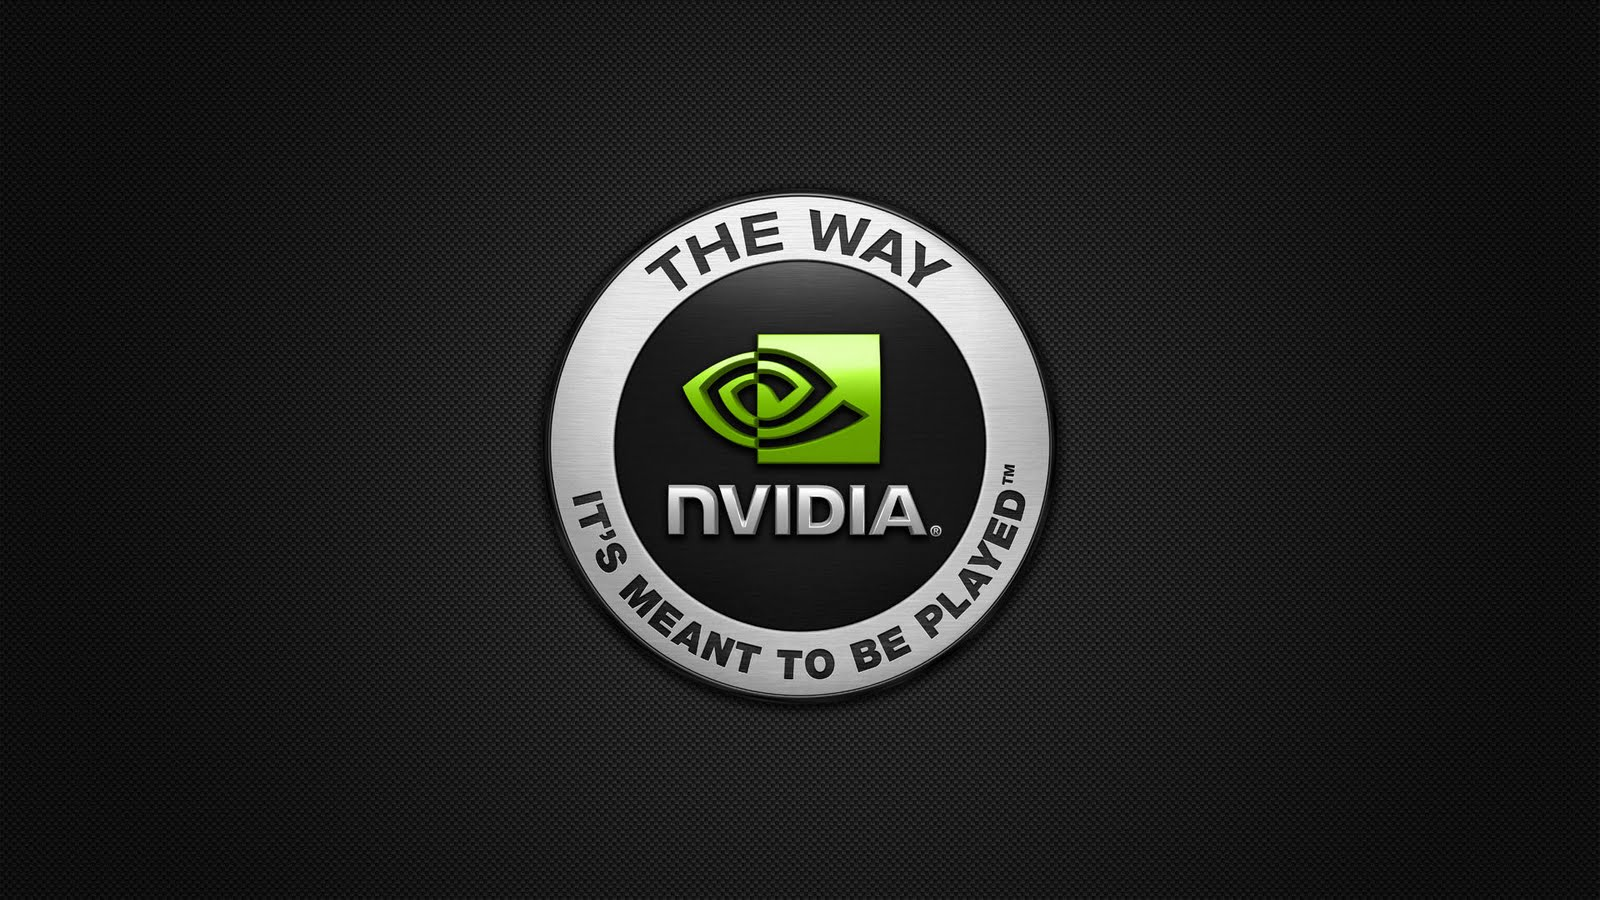 http://3.bp.blogspot.com/-nnljtcPlKk0/TmdWYFISWjI/AAAAAAAAArg/vZO83T7UFGA/s1600/nVidia-the-way-1080p-hd-wallpaper.jpg